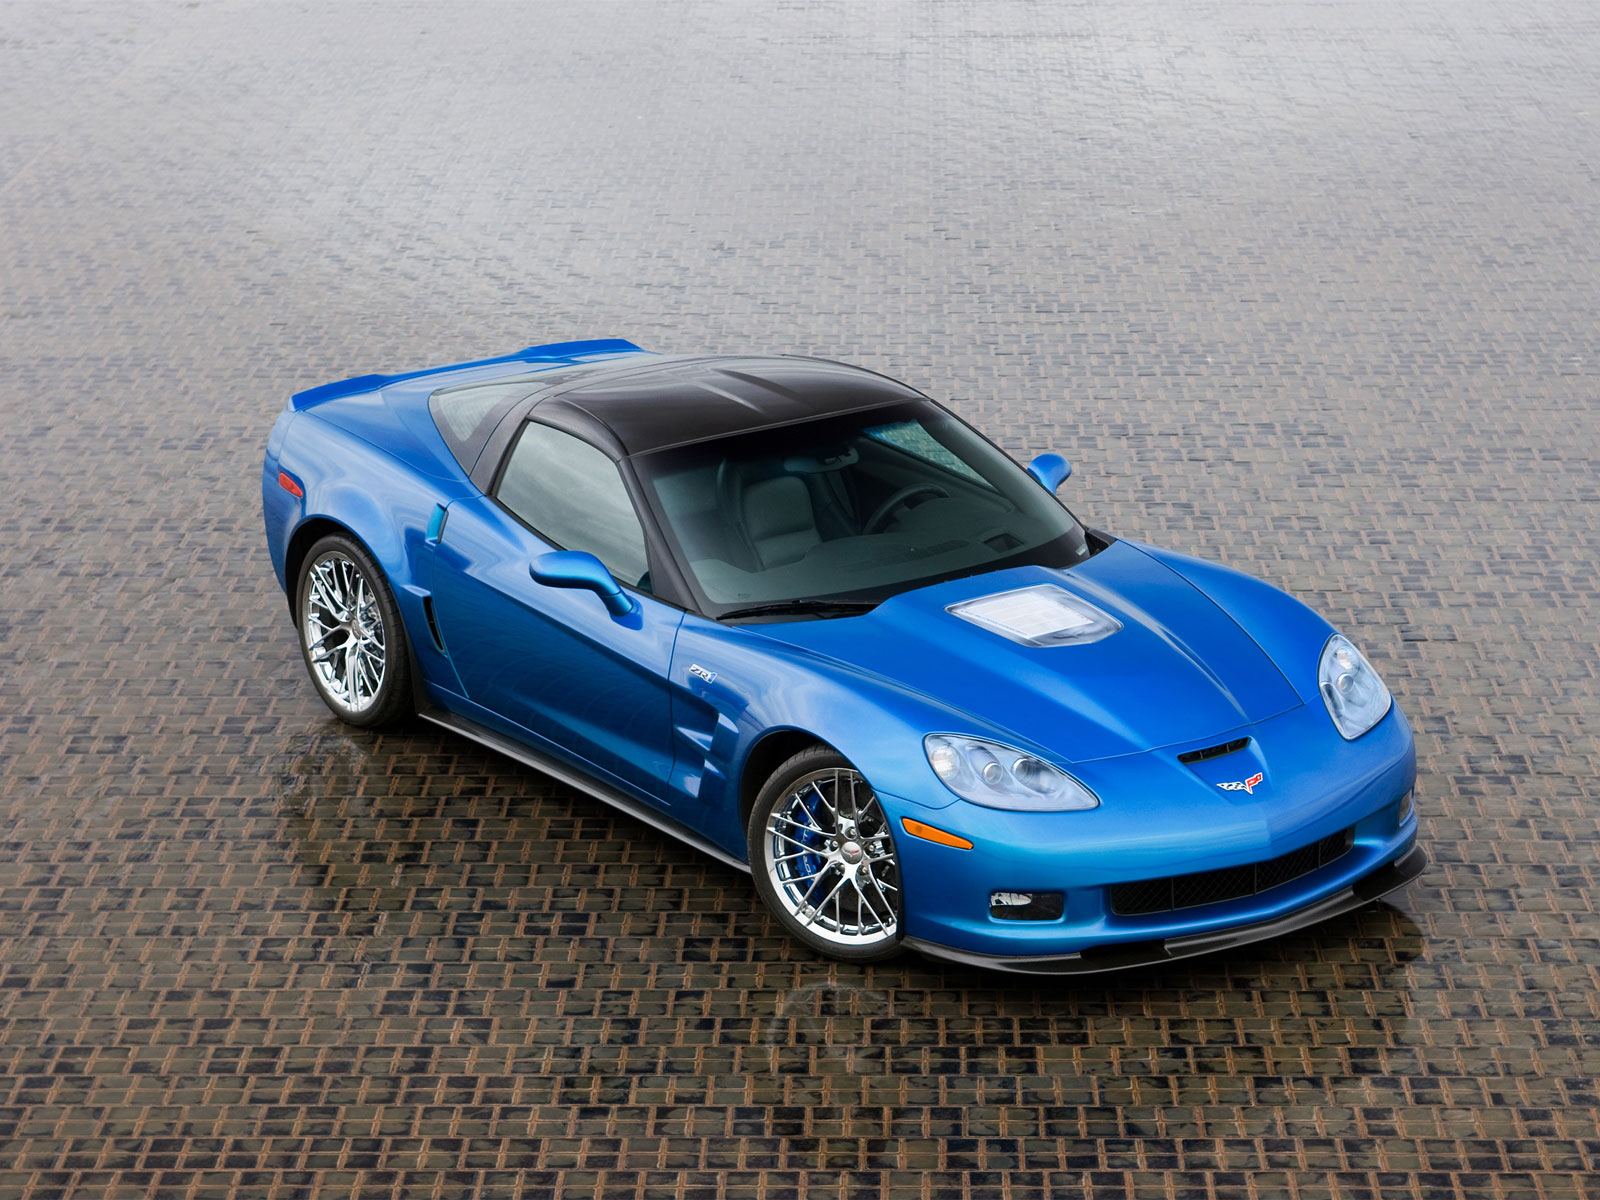 ... Zr1 HD Wallpapers Best High Quality Car Desktop Wallpapers in HD Form